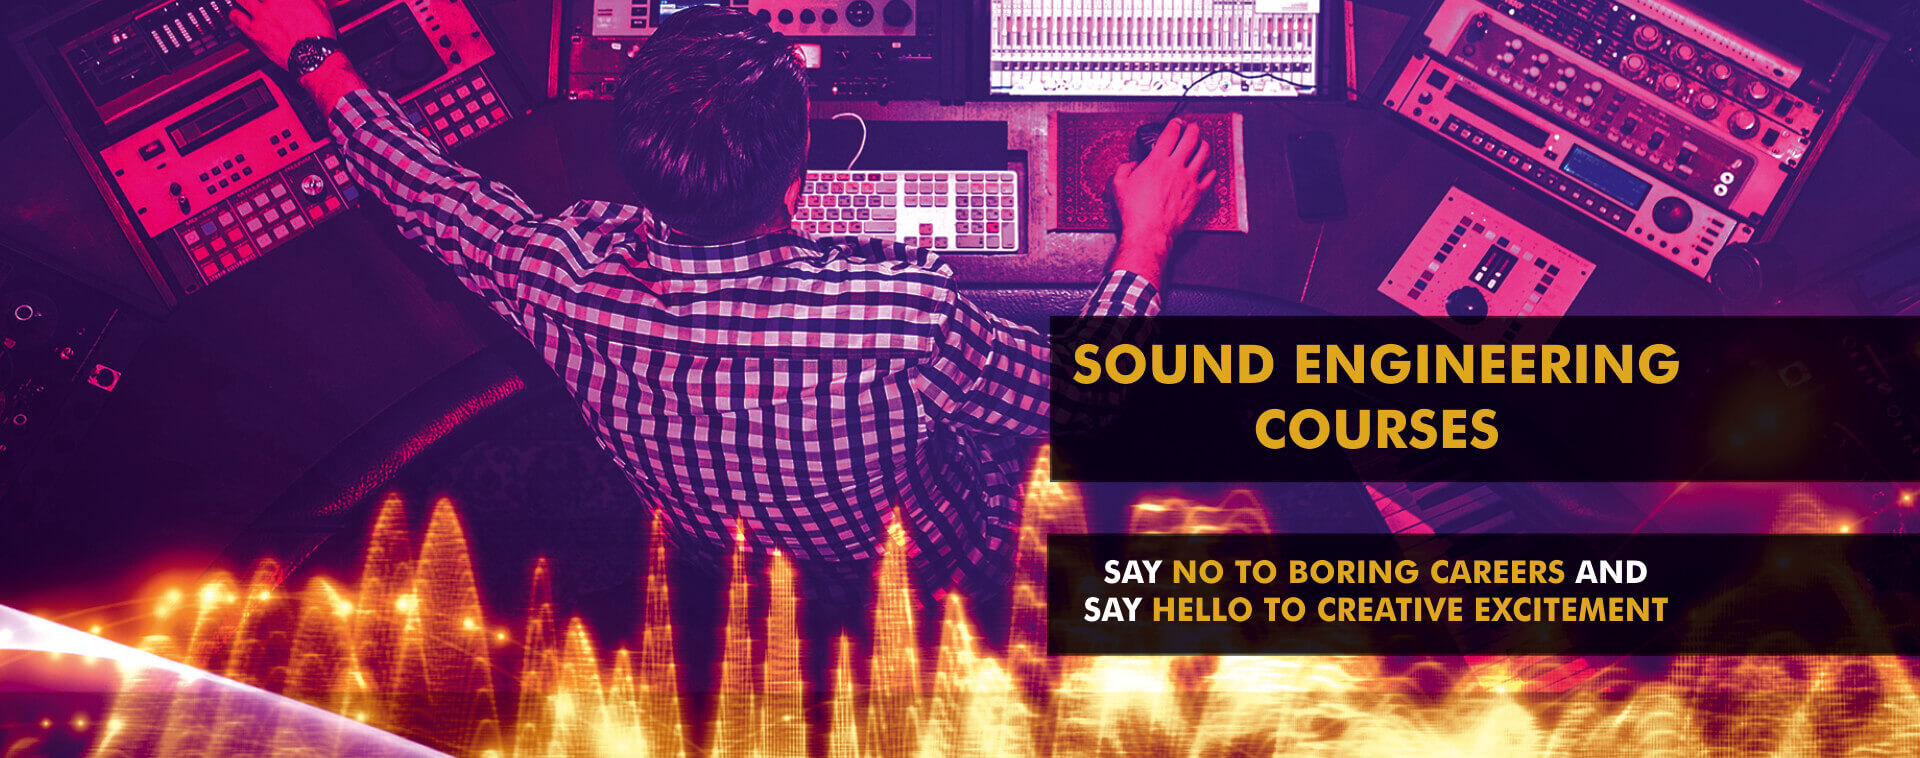 PATSAV - Best Institute for Sound Engineering in Hyderabad | Delhi